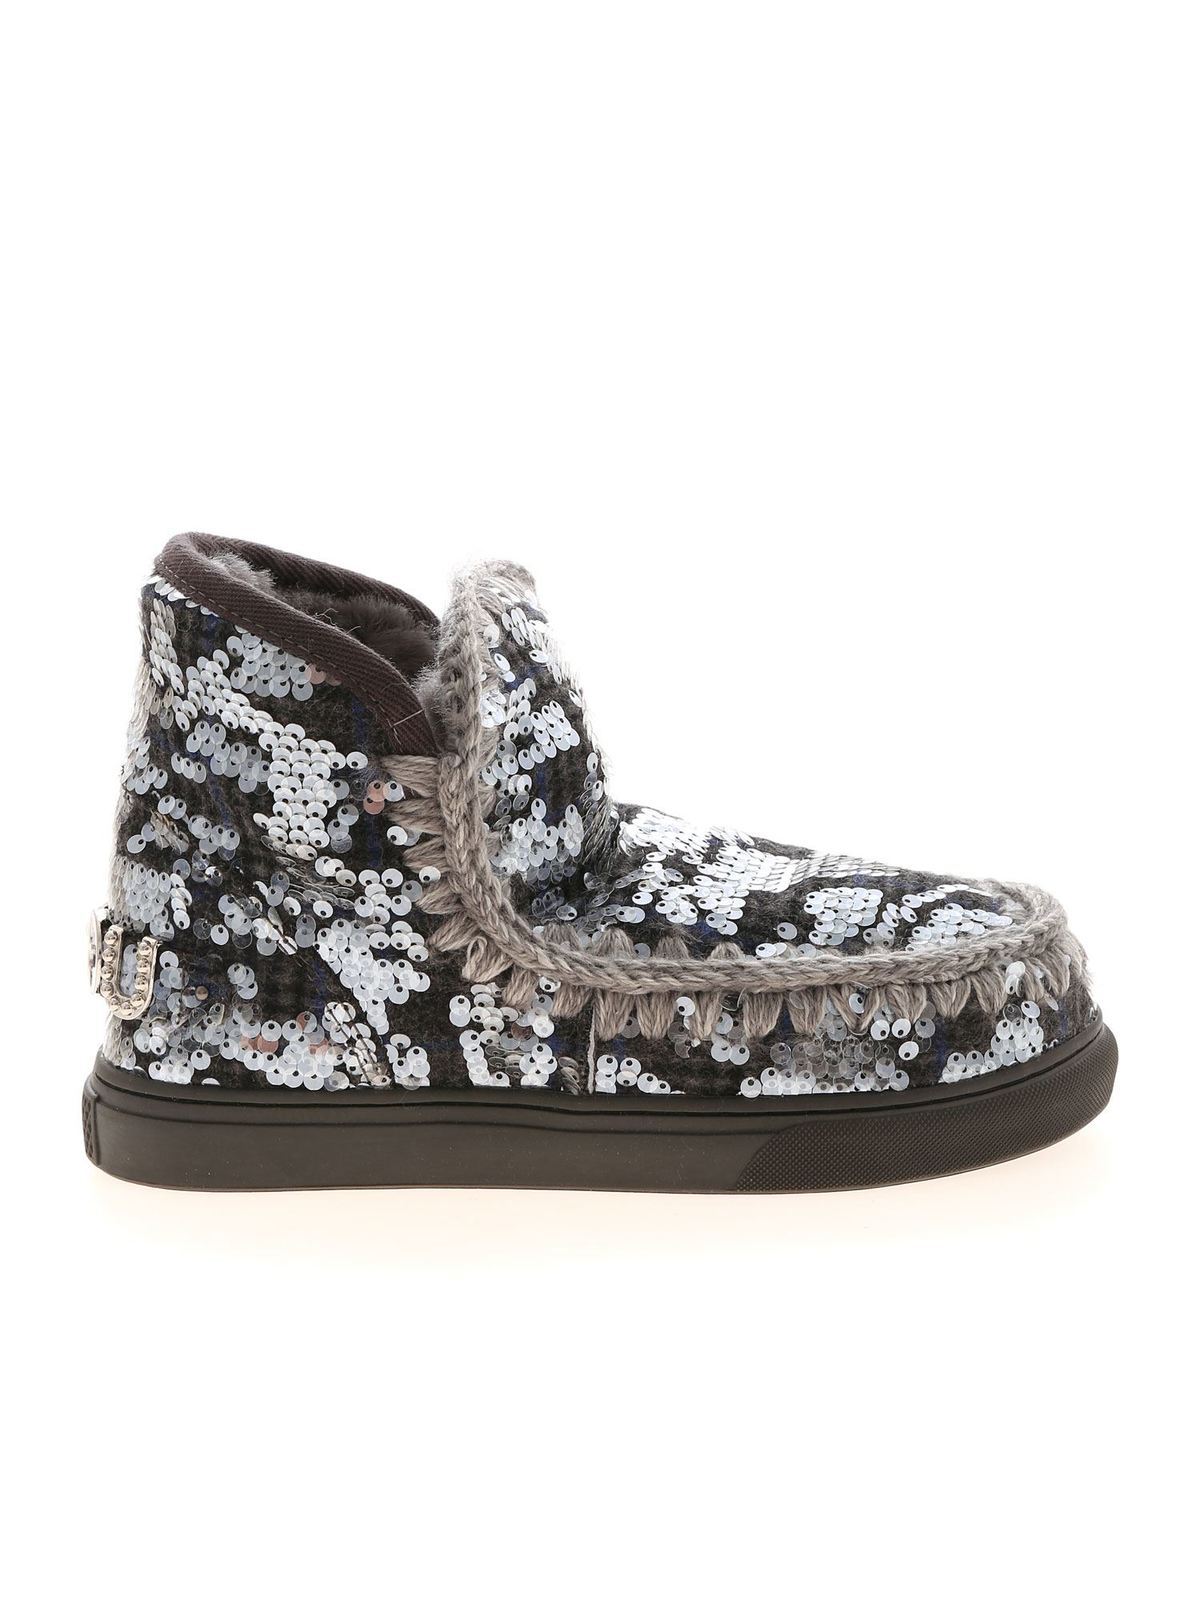 Mou WOOL PLAID AND SEQUINS SNEAKERS IN GREY